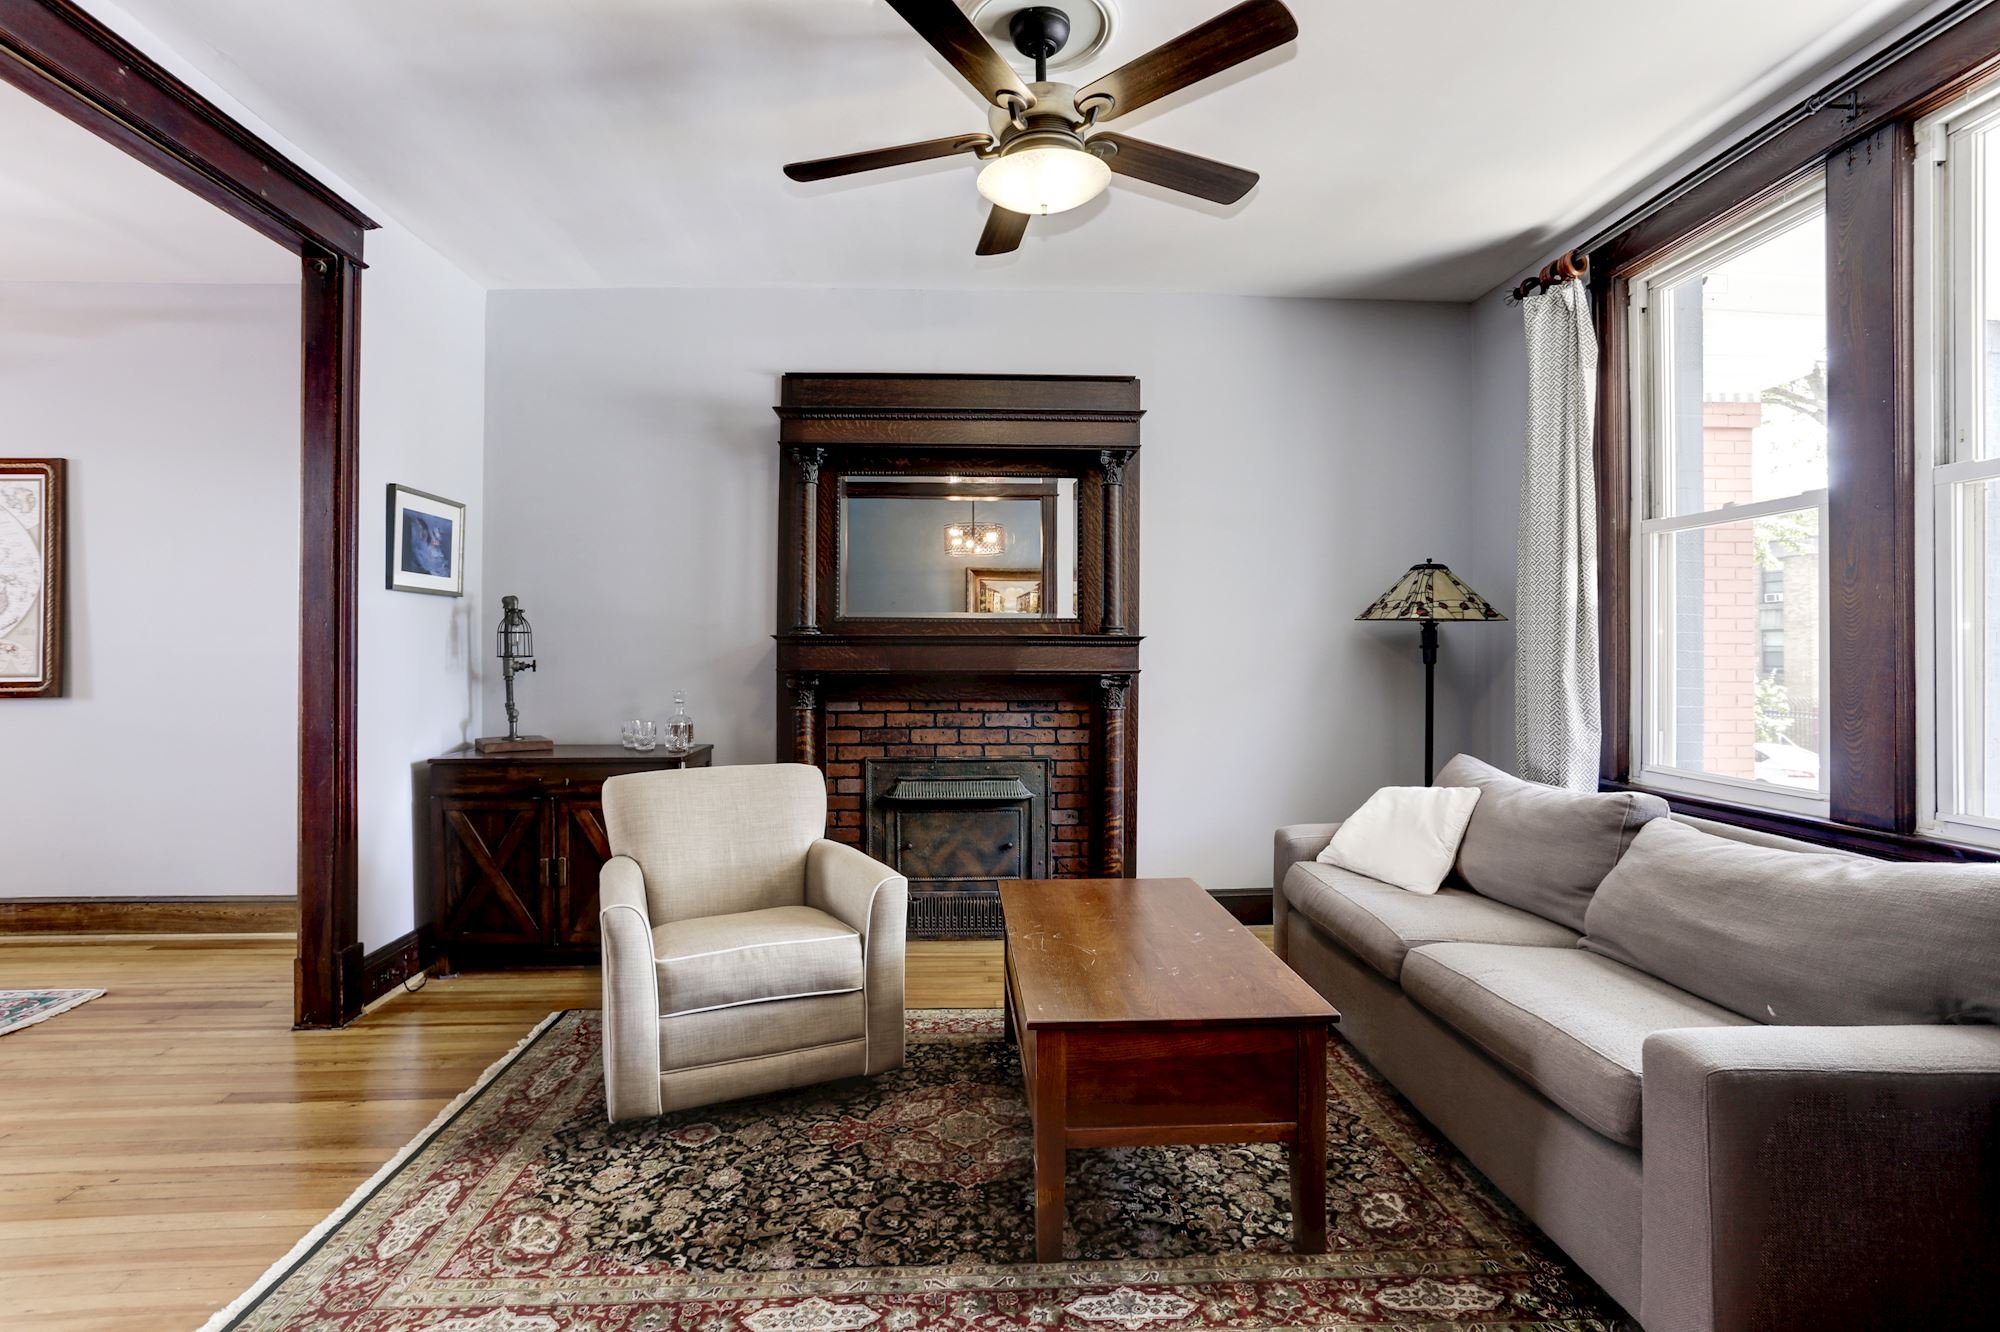 NEW LISTING: 2 BD Renovated Row House in Great DC Neighborhood!